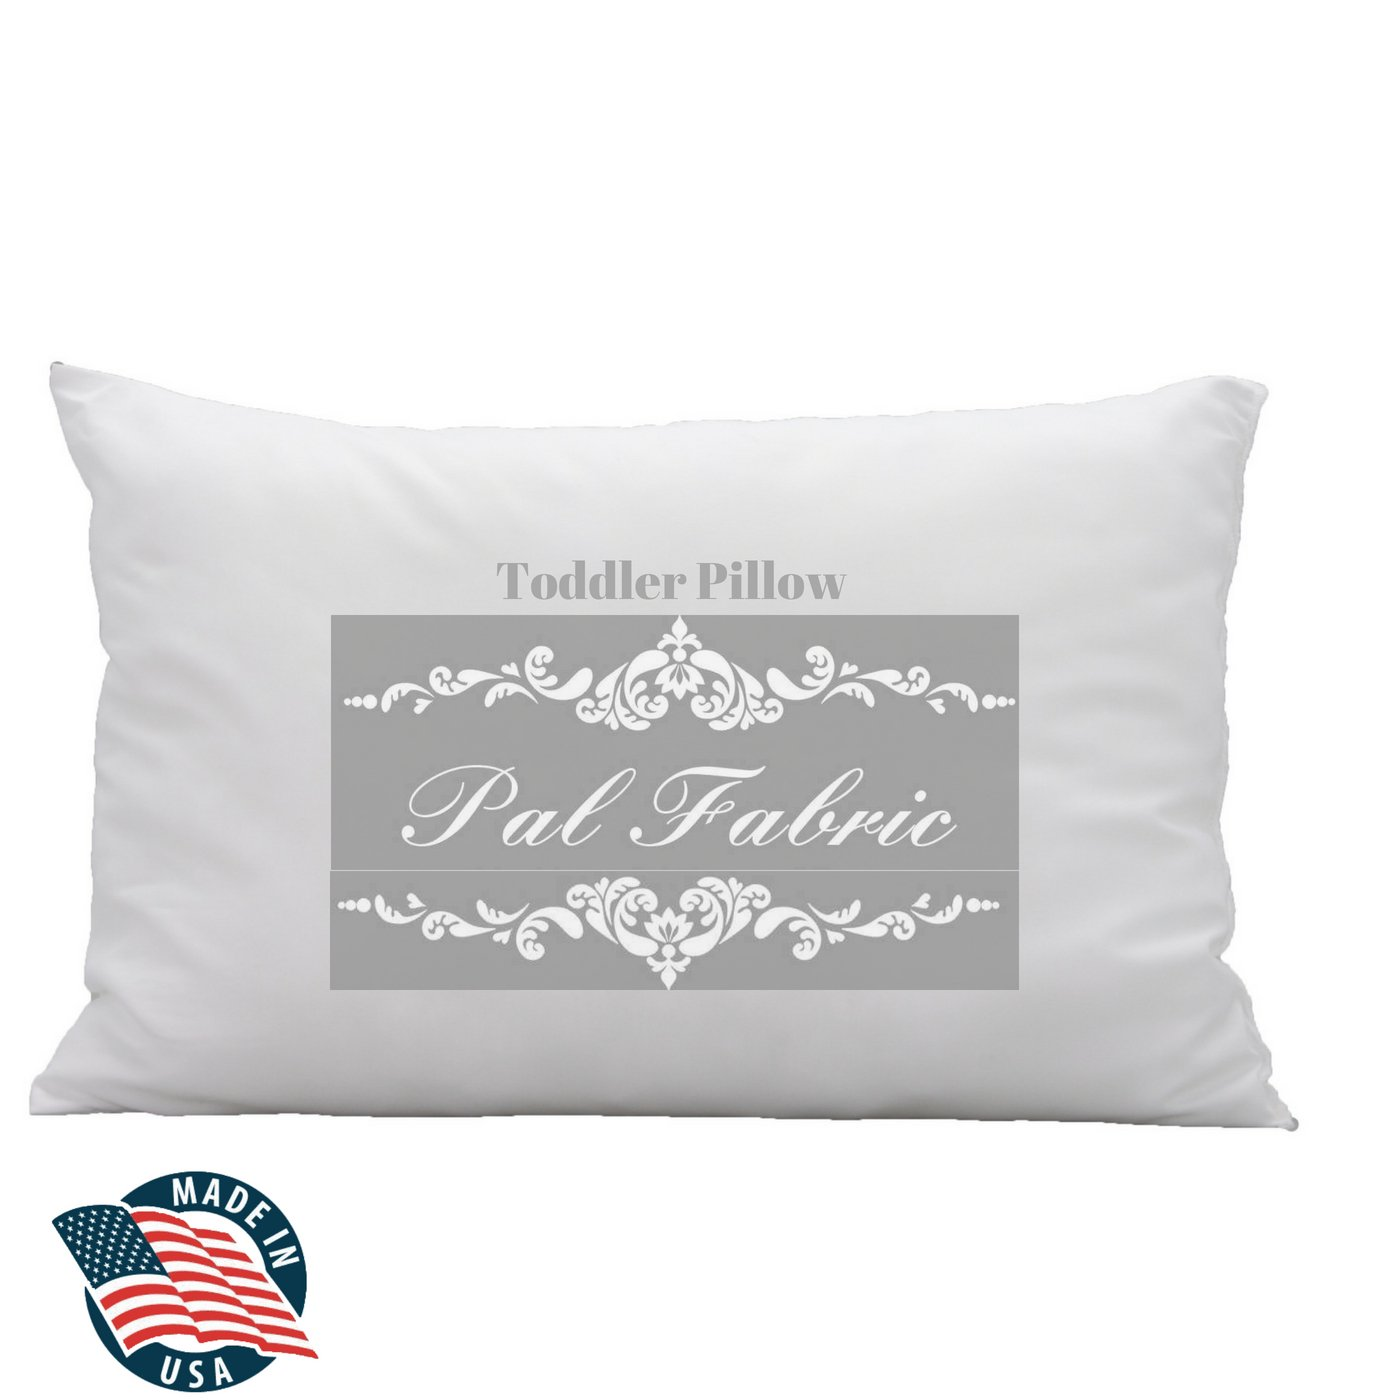 Premium Pure White 100% Cotton Toddler Pillow (13x19 with Cotton PillowCase) Machine Washable - Hypoallergenic- Made in USA